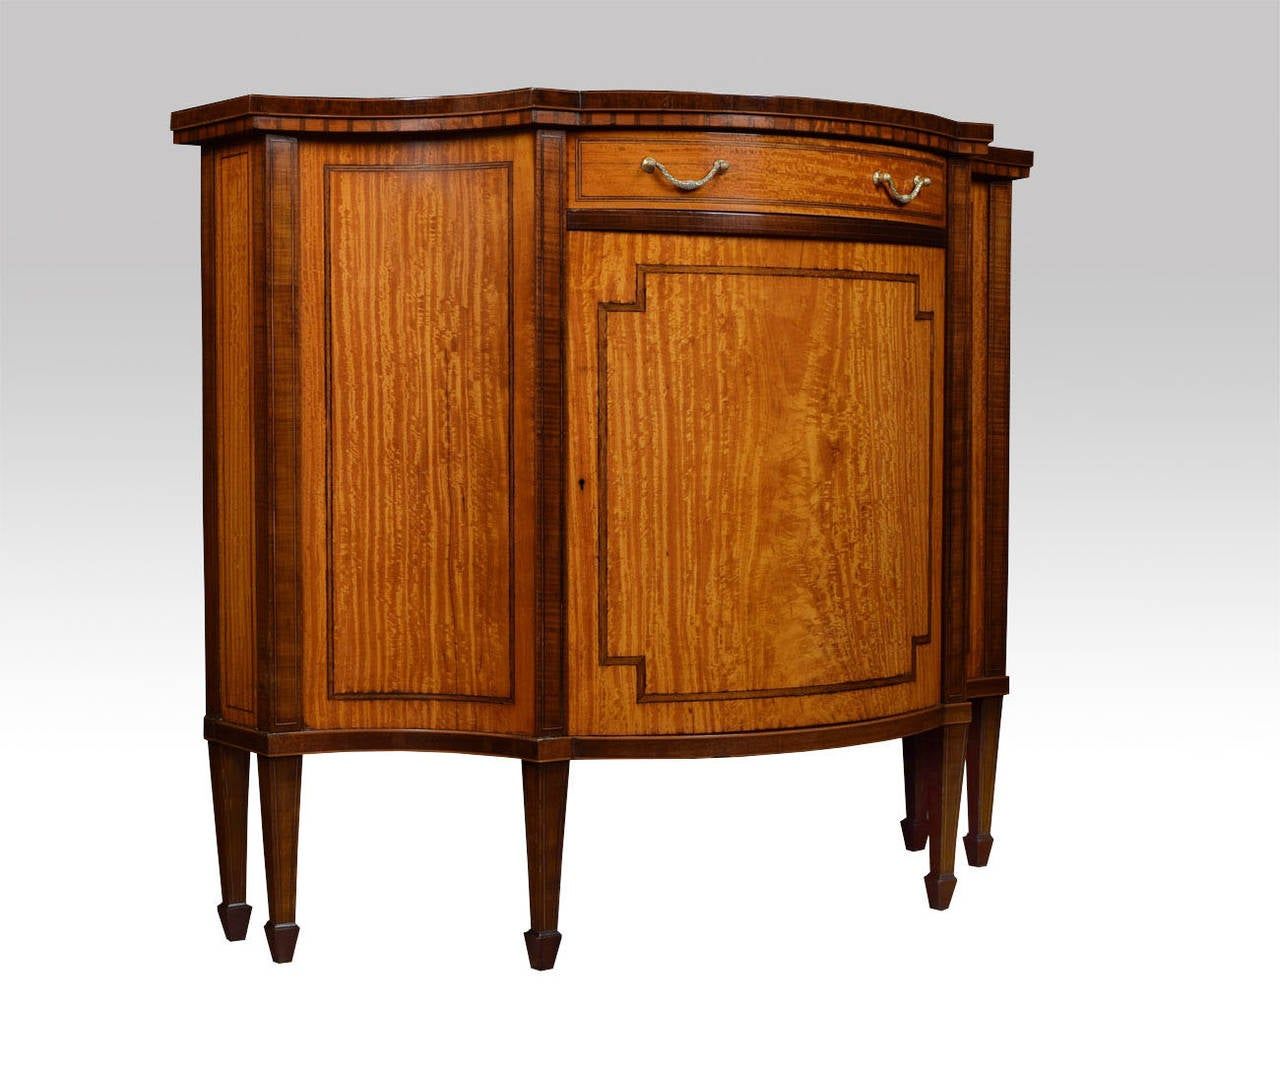 Sheraton Revival Inlaid Serpentine Fronted Cabinet 2